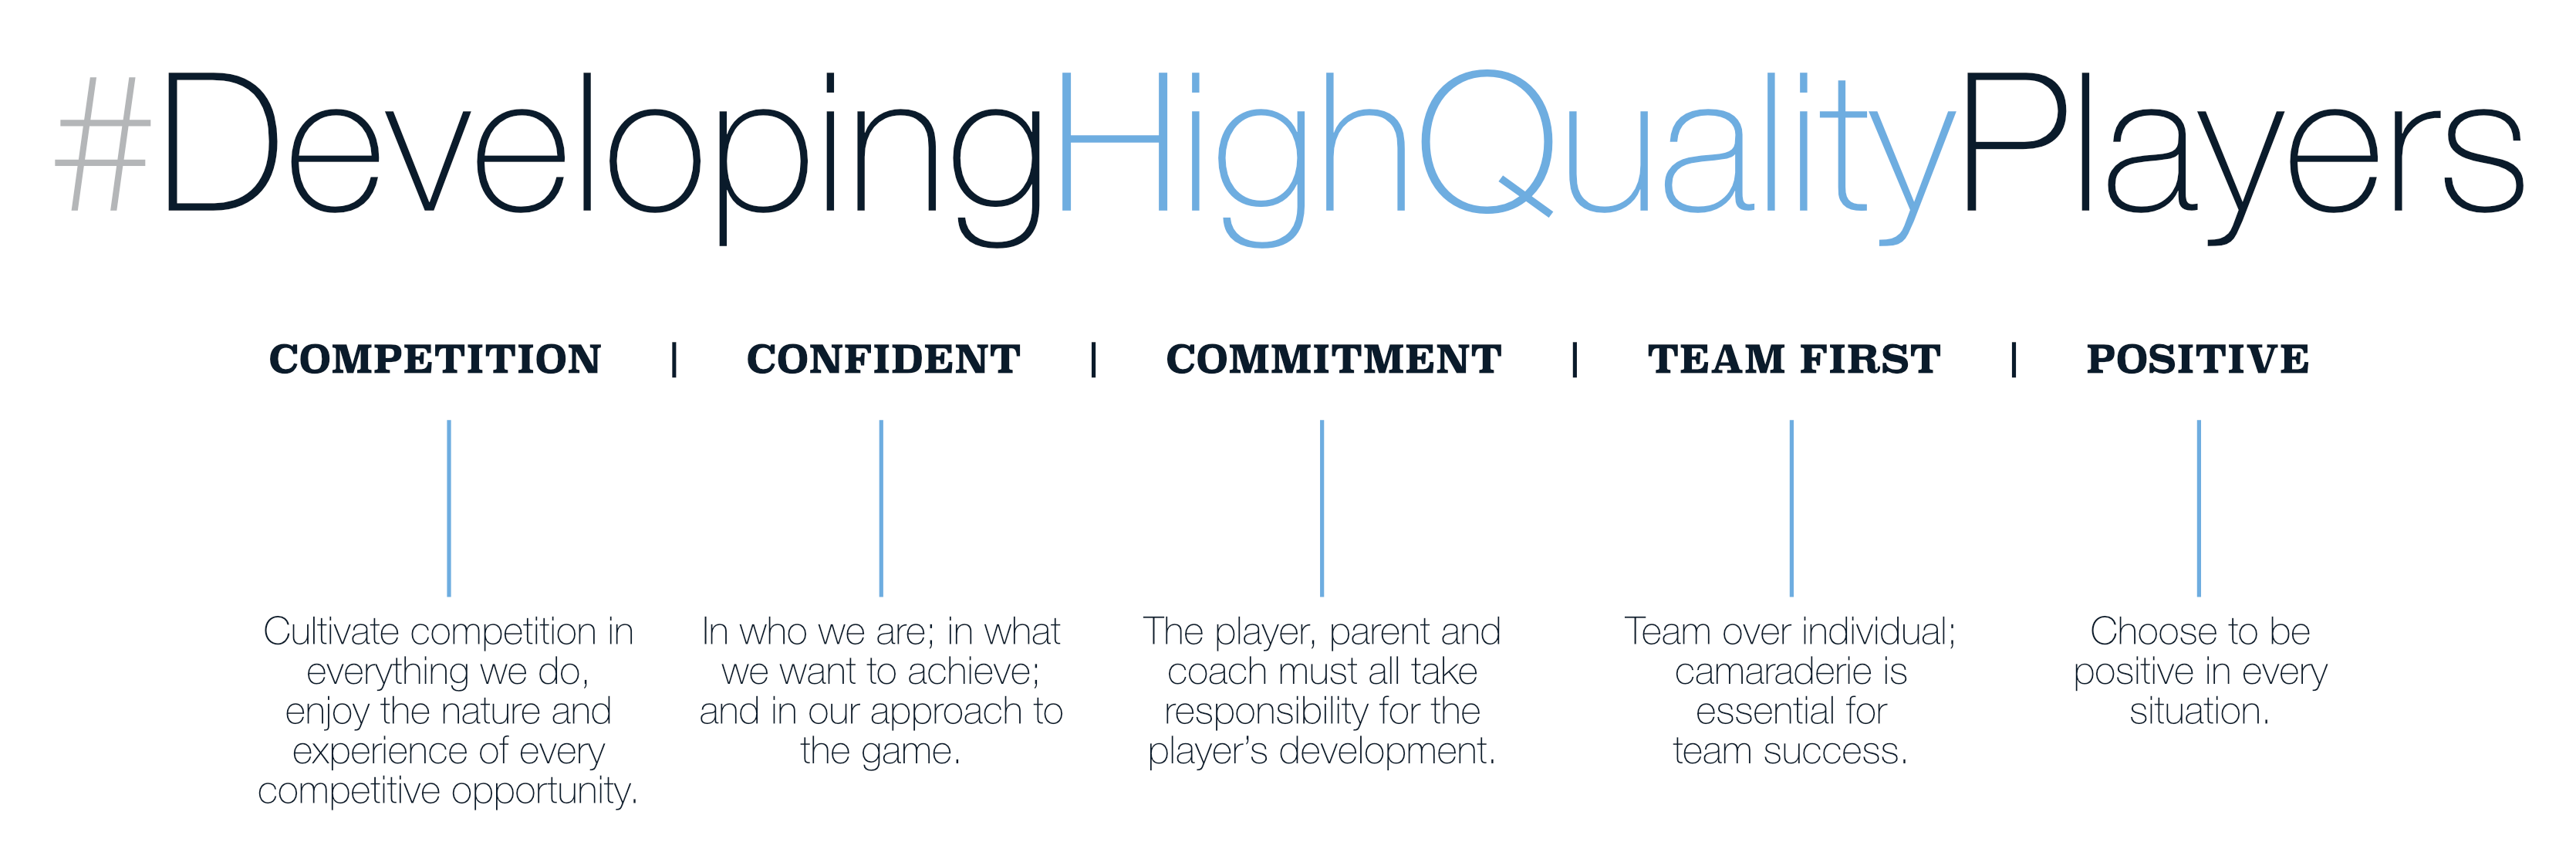 Developing High Quality Players